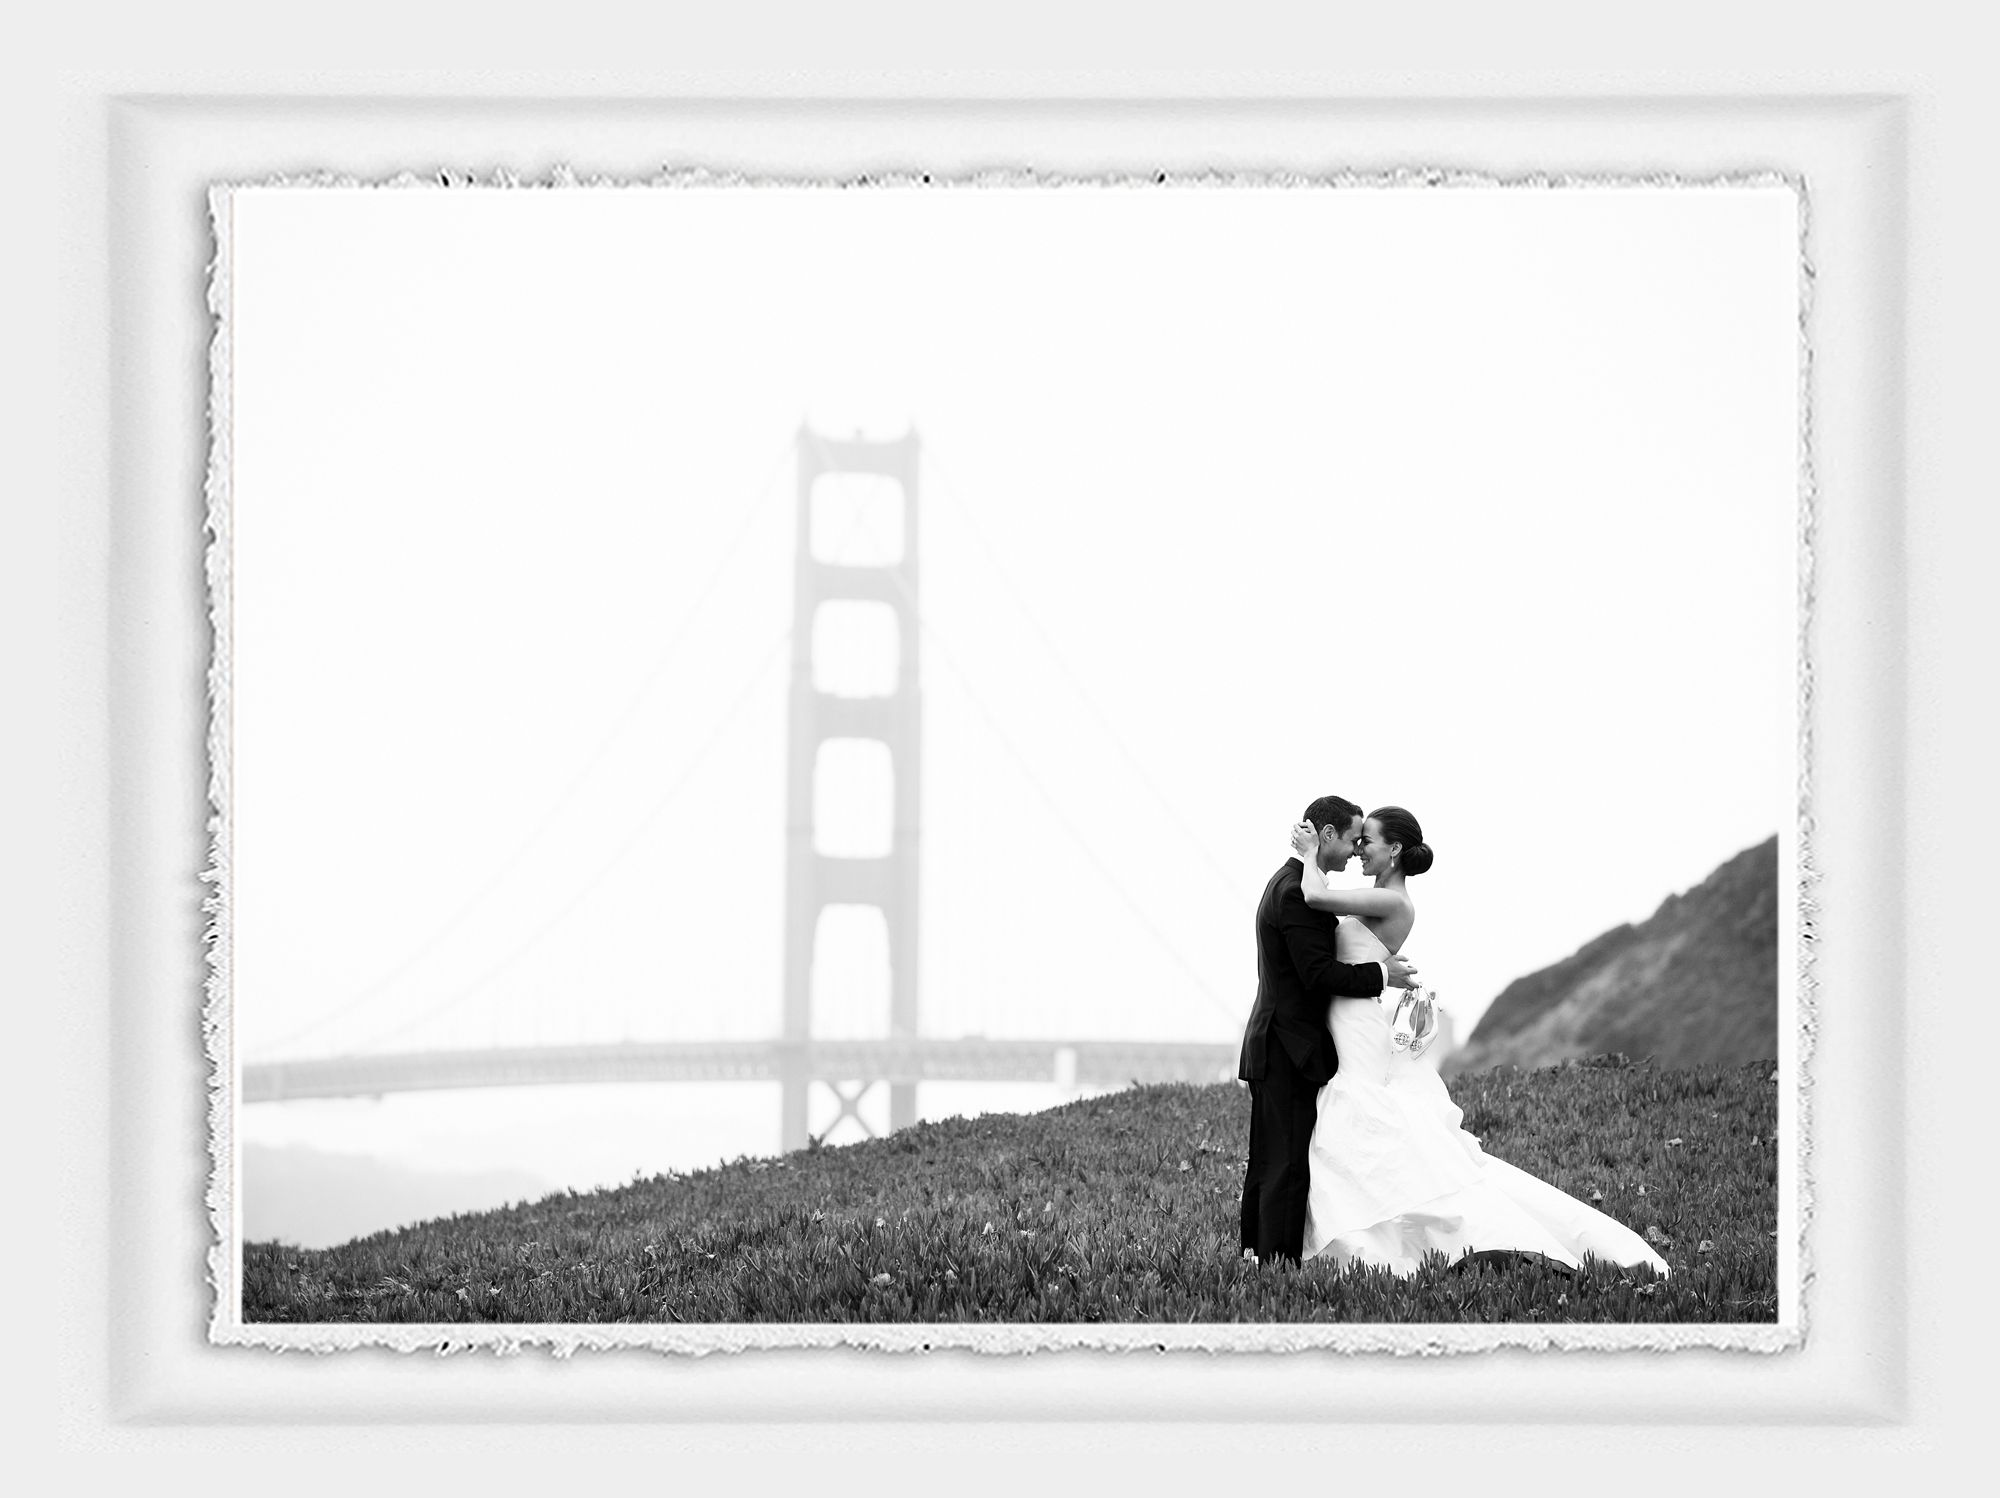 San francisco wedding photographer bambi cantrell serving san